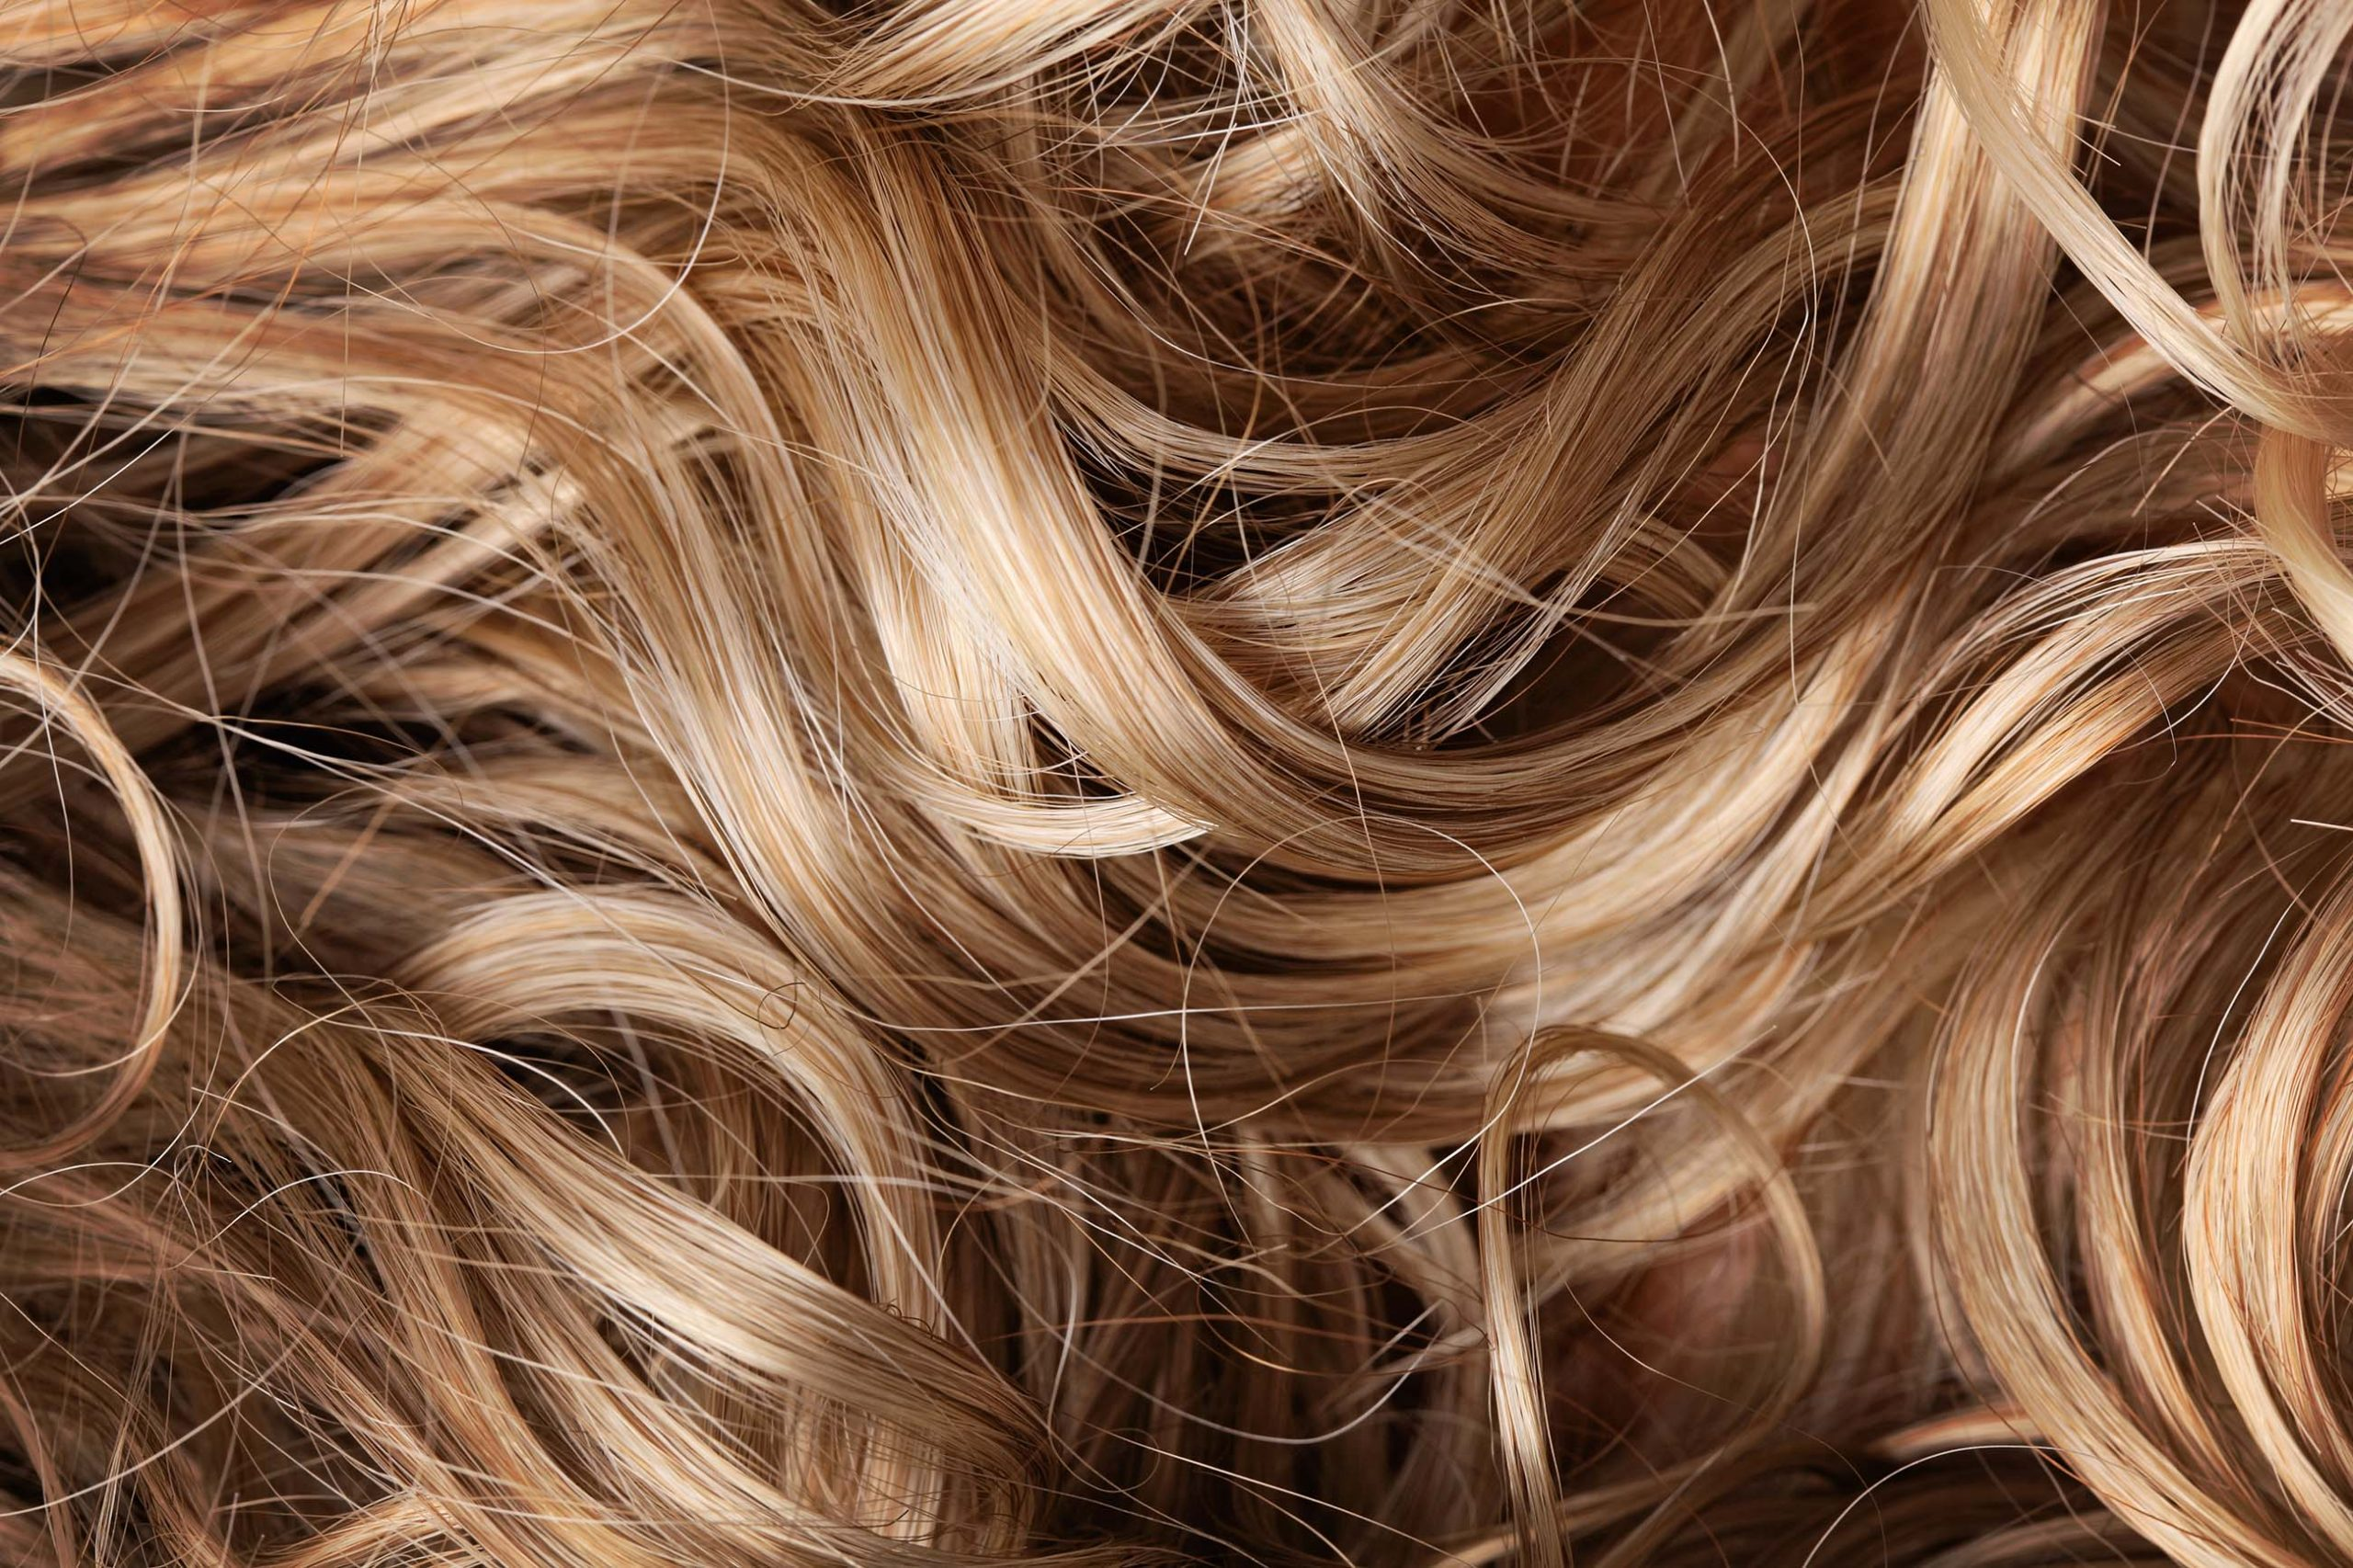 Close-Up Shot of Curled Blonde/Brown Hair